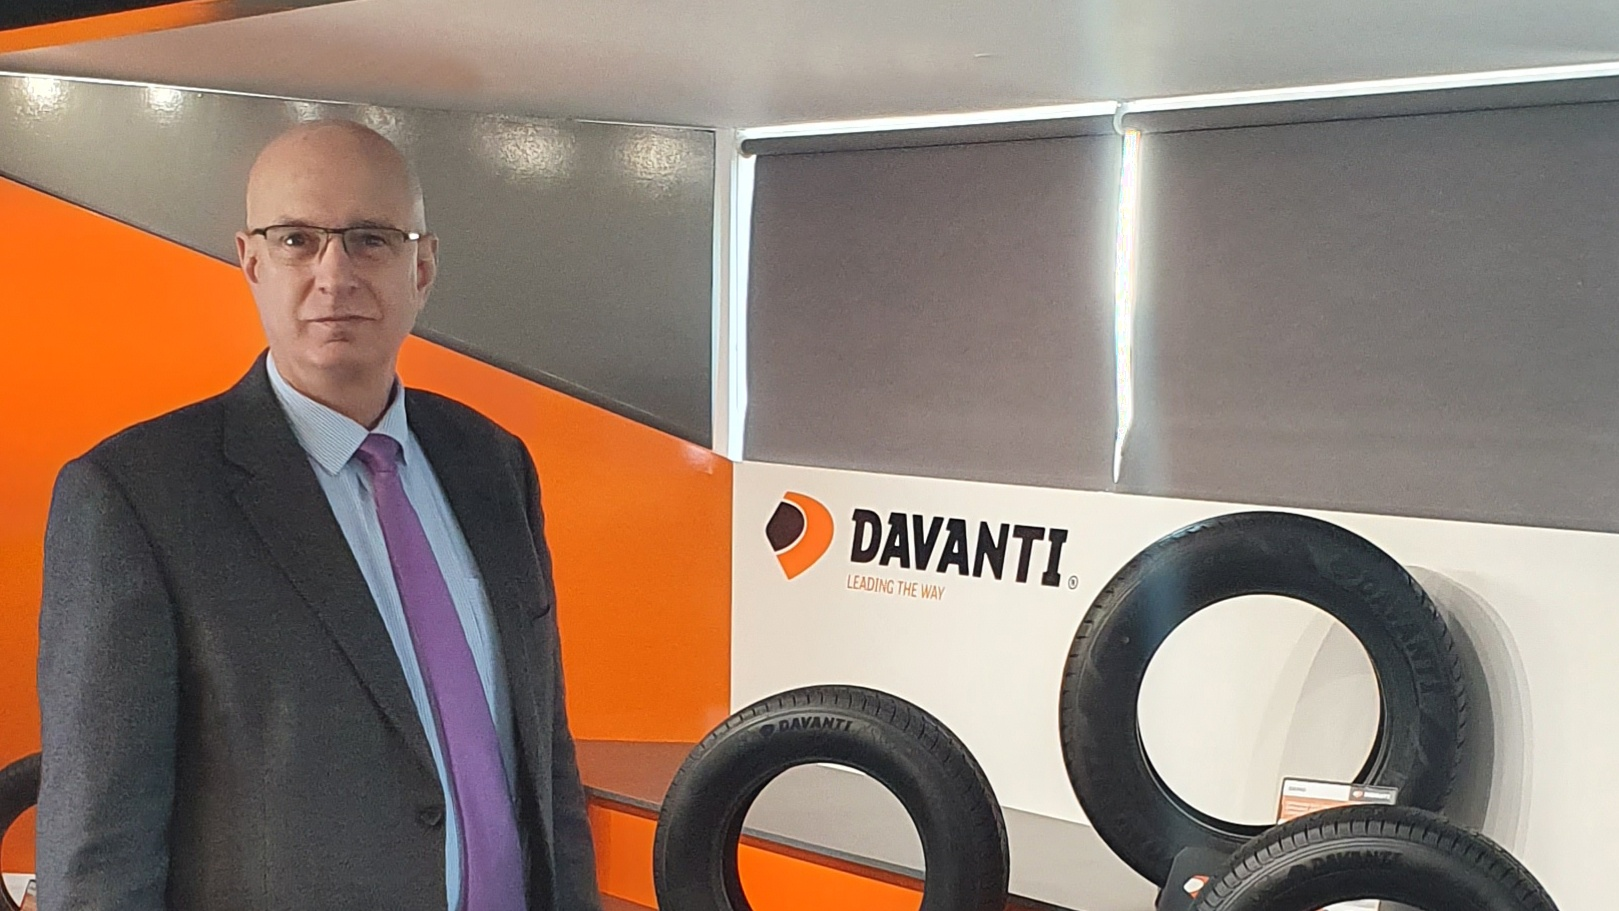 Davanti Appoints Najib Chakhtoura to Expand Brand Presence in Middle East and Africa